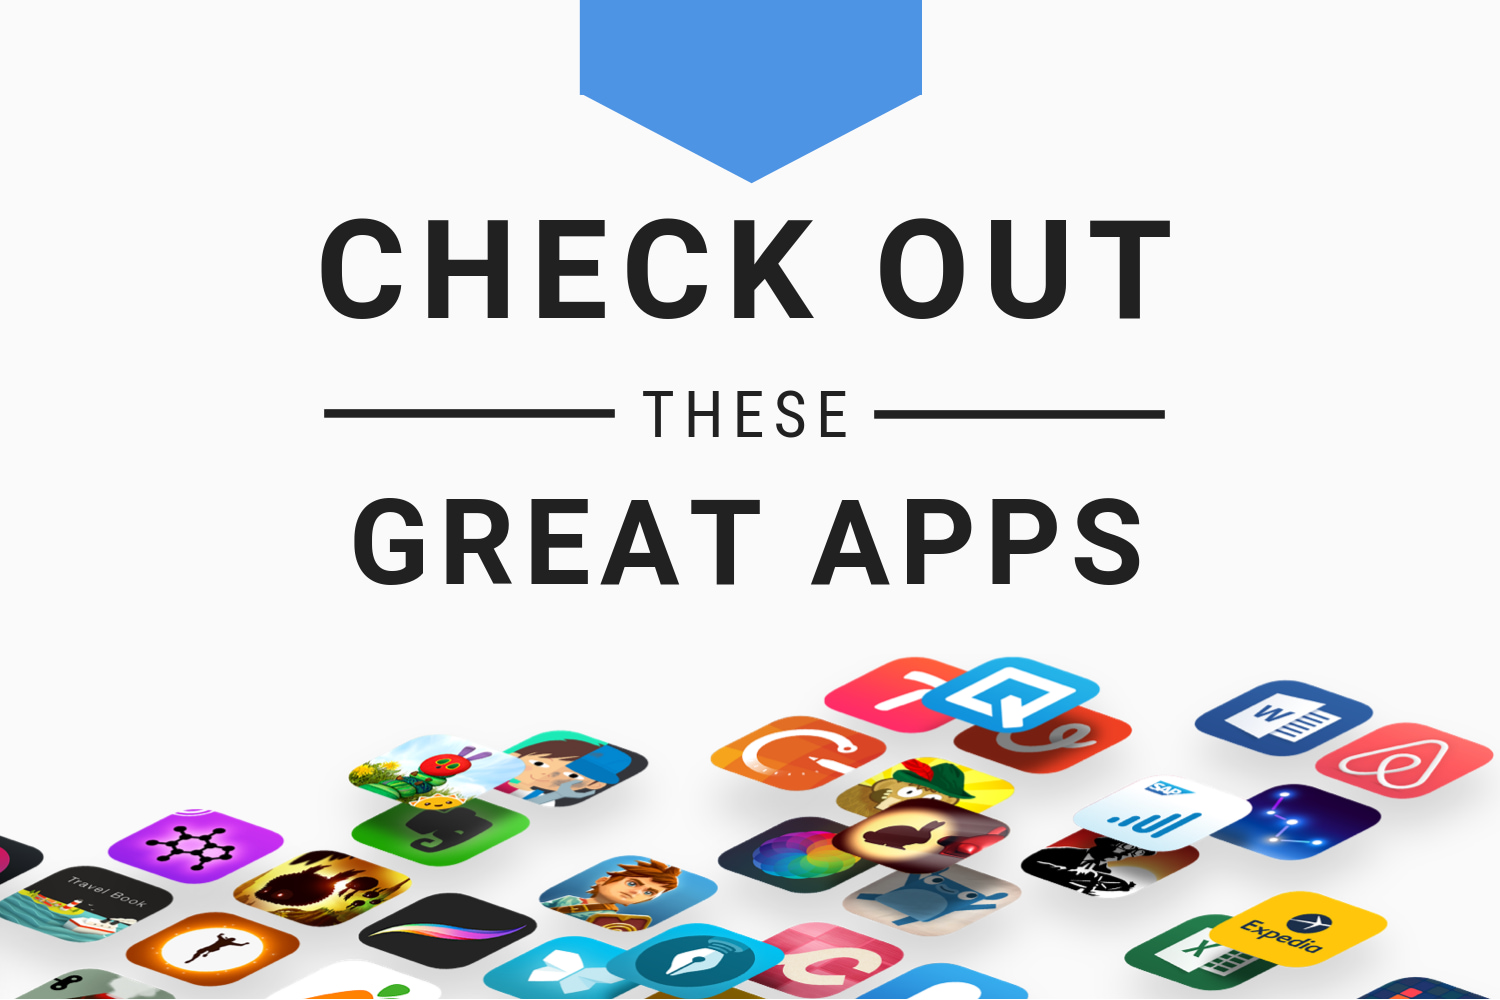 Veil, IOU, Wynk Widget and other apps to check out this weekend